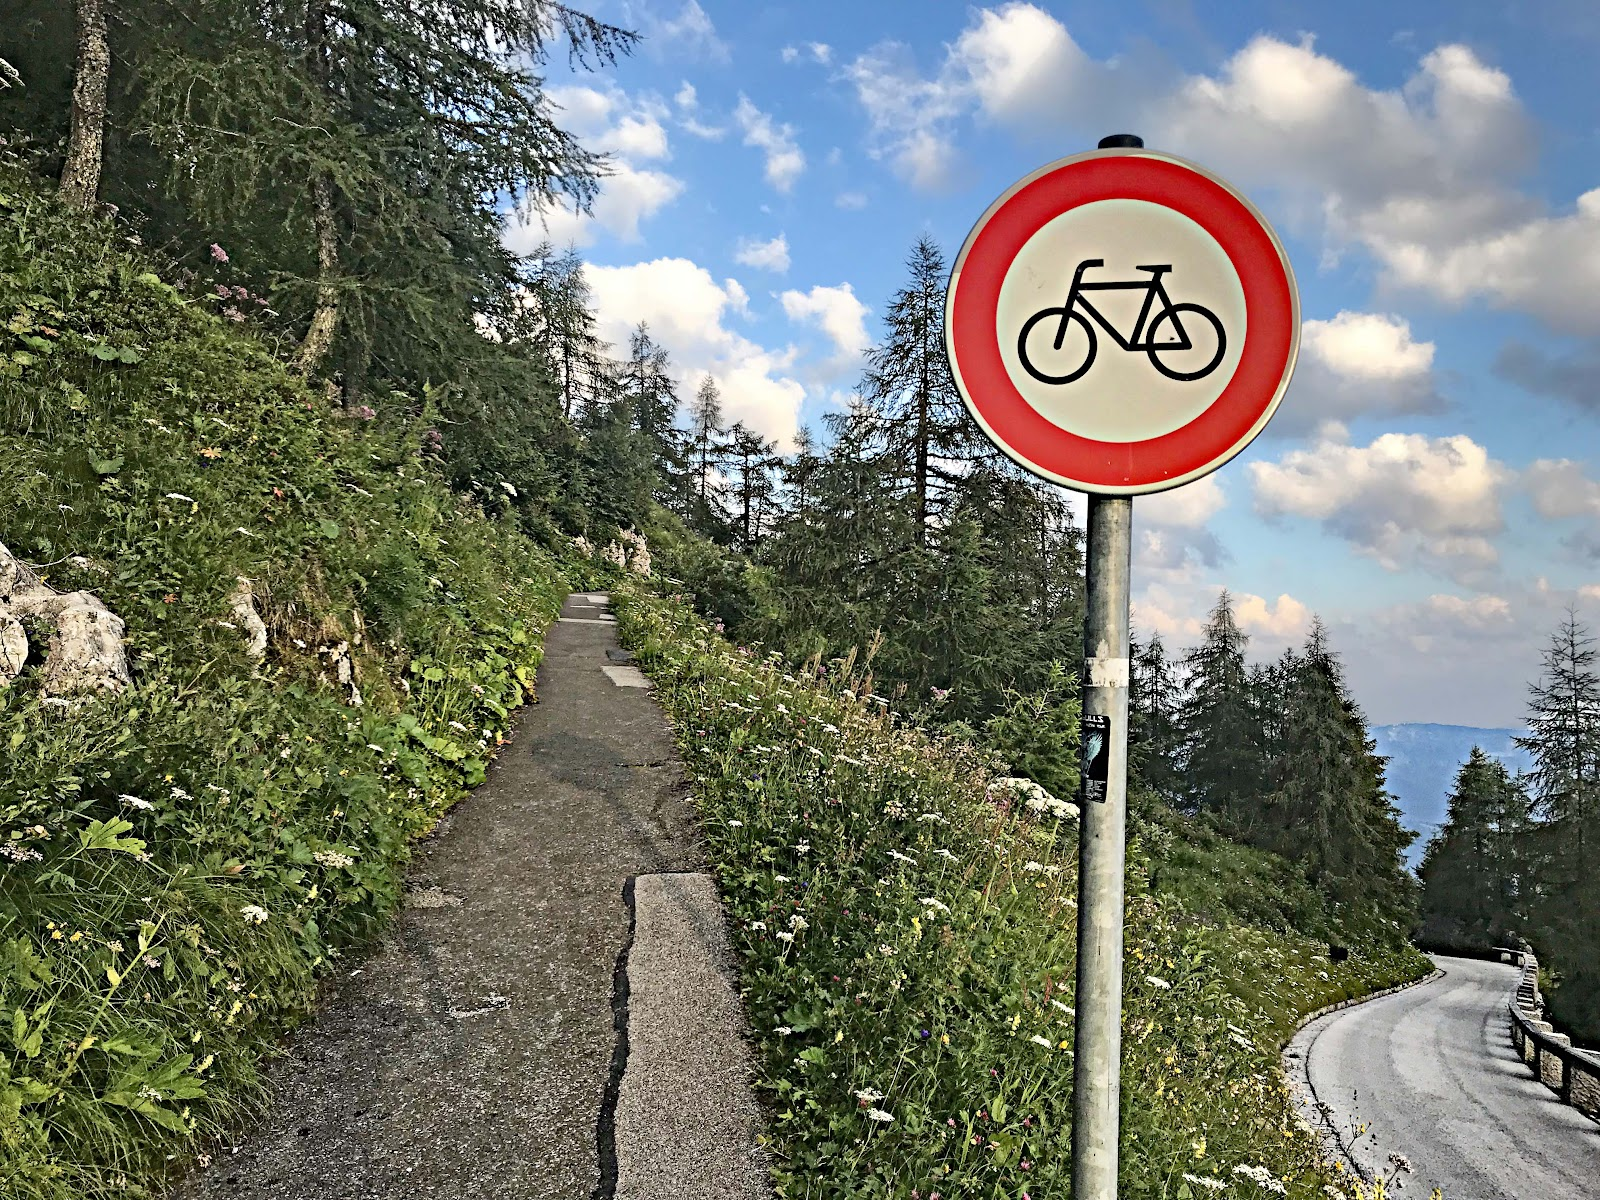 Bicycle climb to Kehlsteinhaus - Eagles Nest - no bike sign and walkway to top